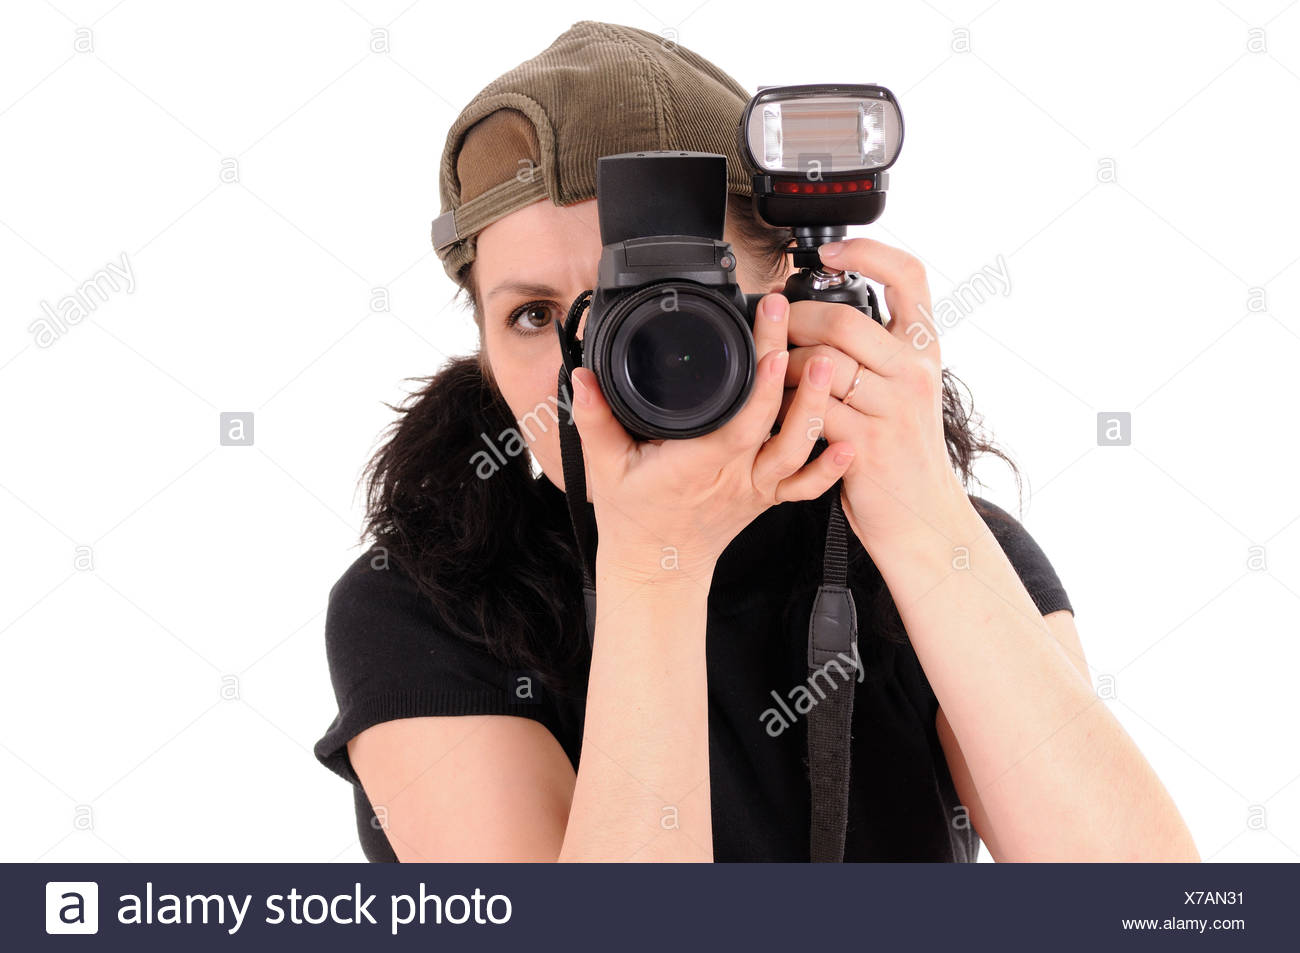 The woman the photographer is photographed close up - Stock Image